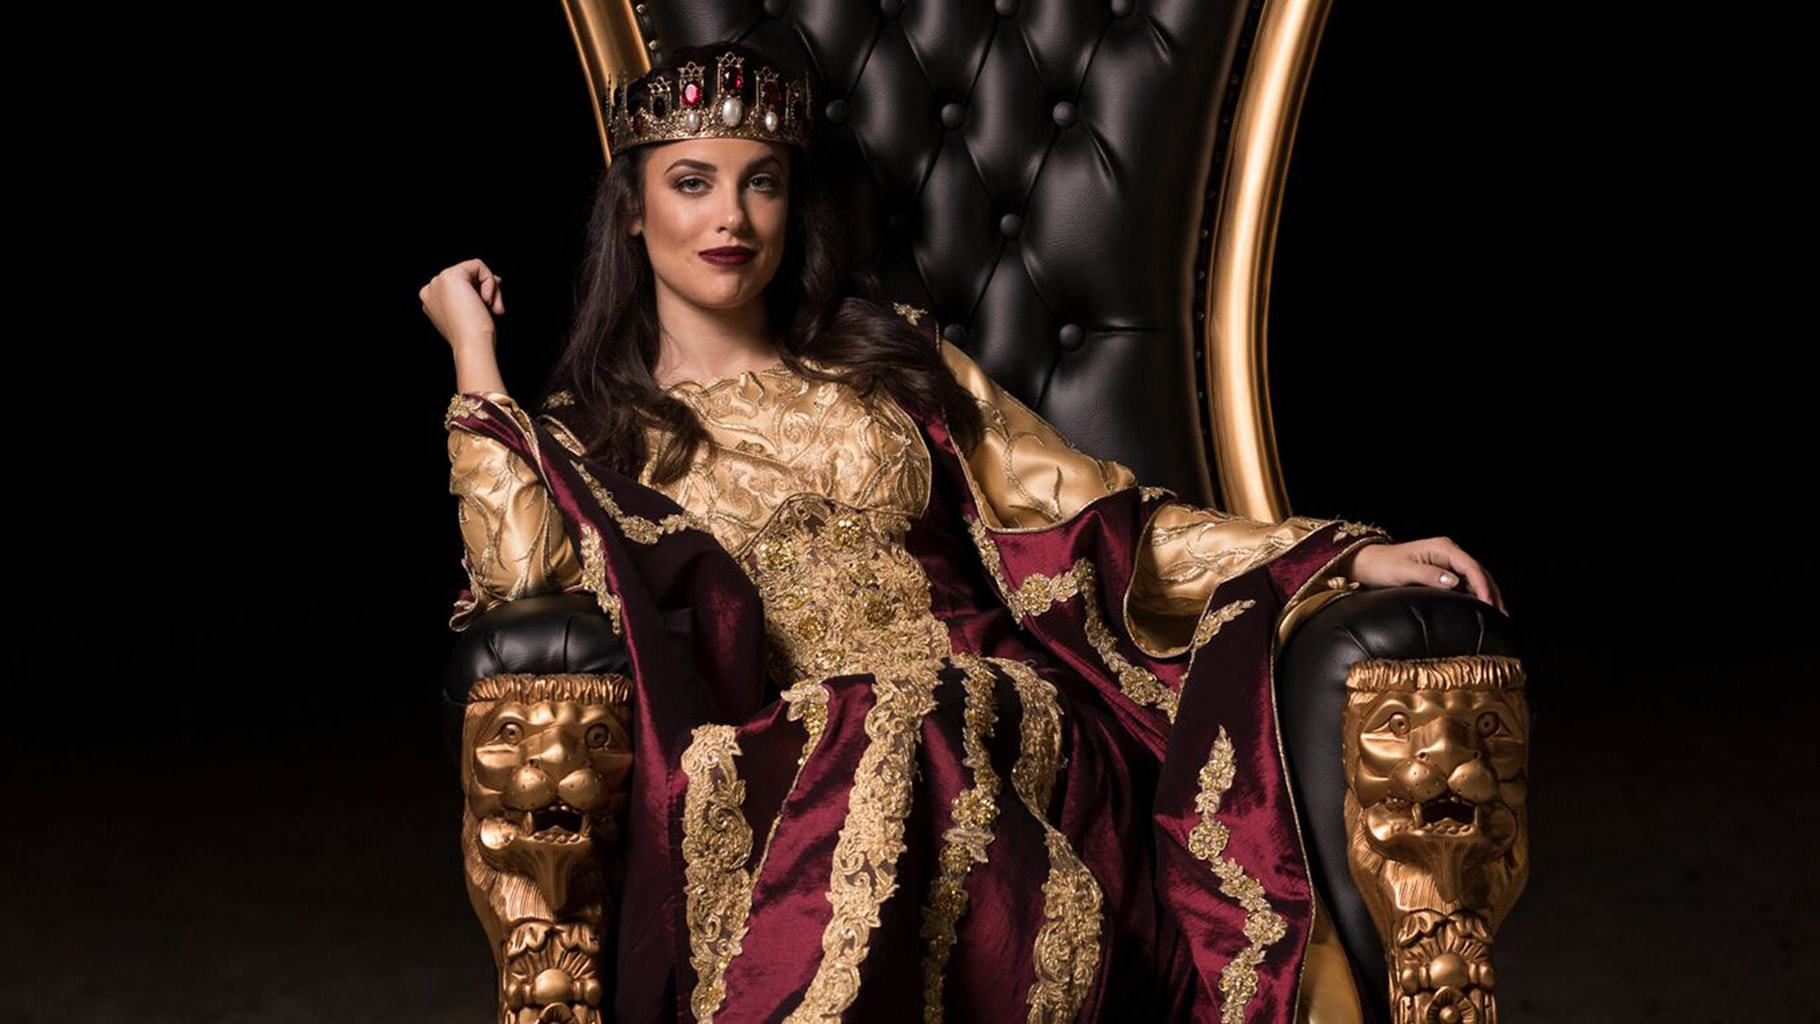 Medieval Times New Show: Queen in Atlanta Takes The Reign + Giveaway